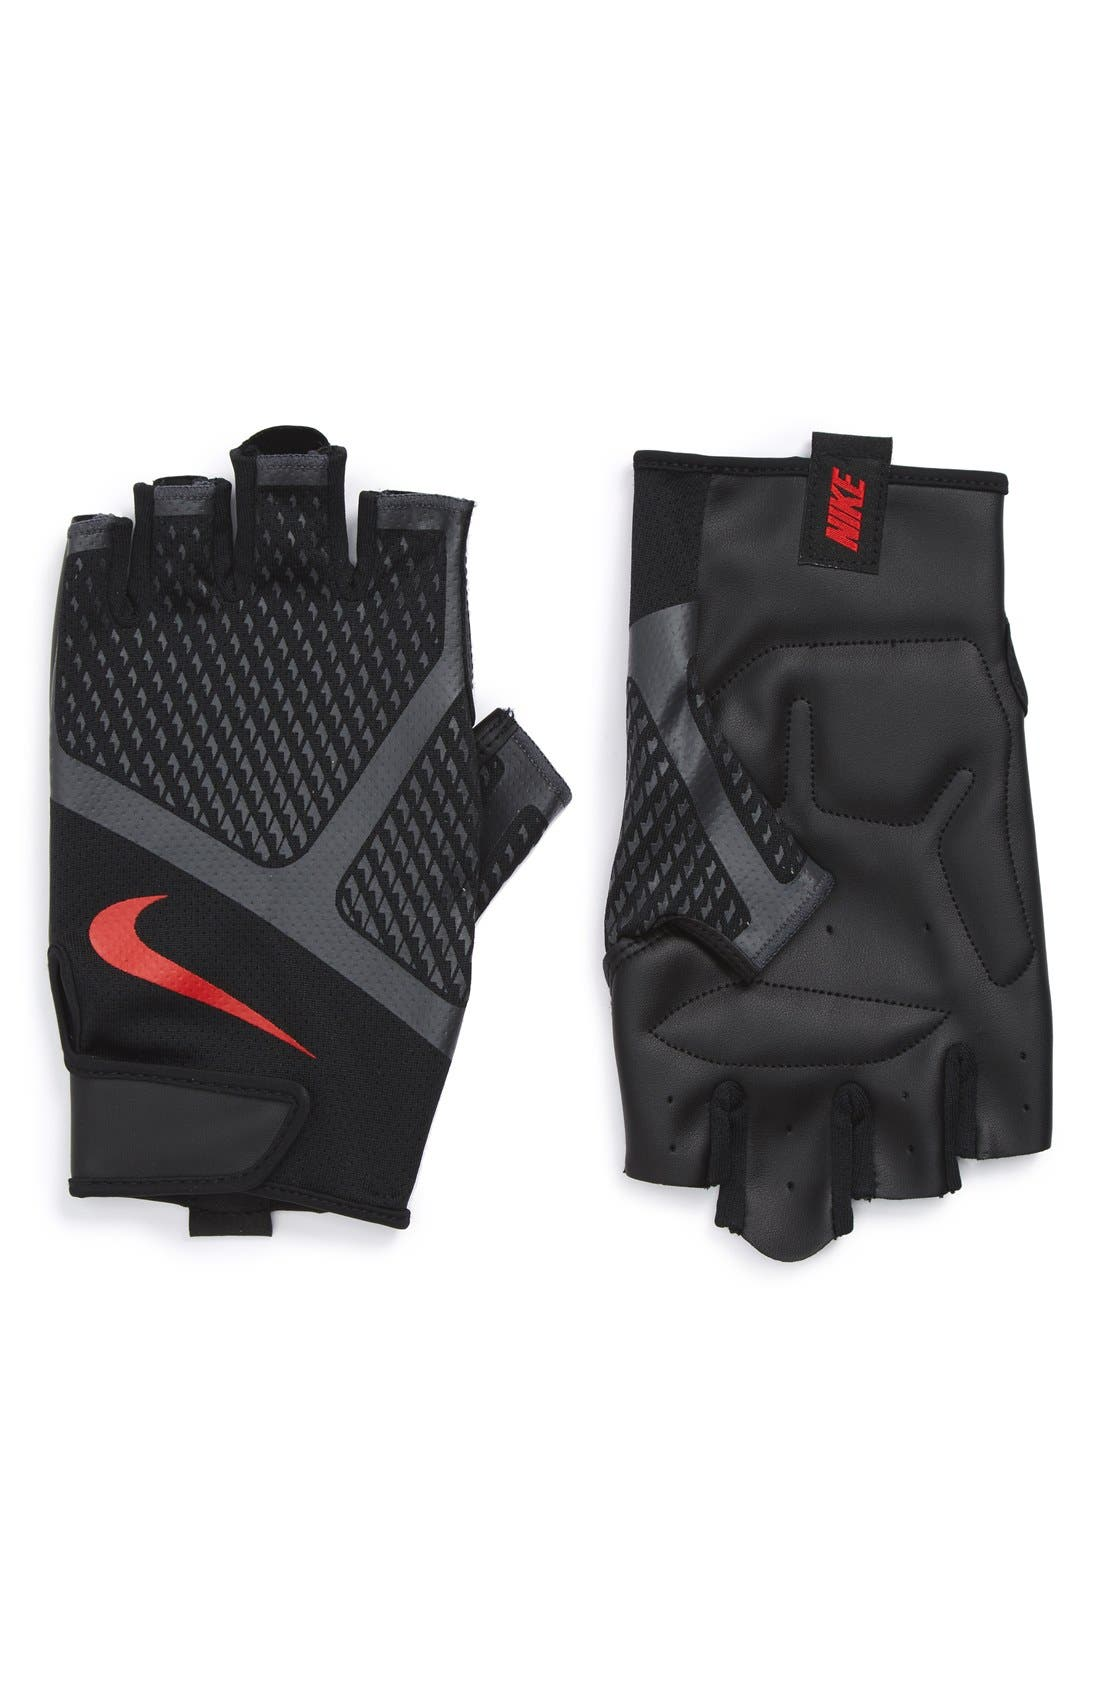 Alternate Image 1 Selected - Nike 'Renegade' Fingerless Padded Training Gloves